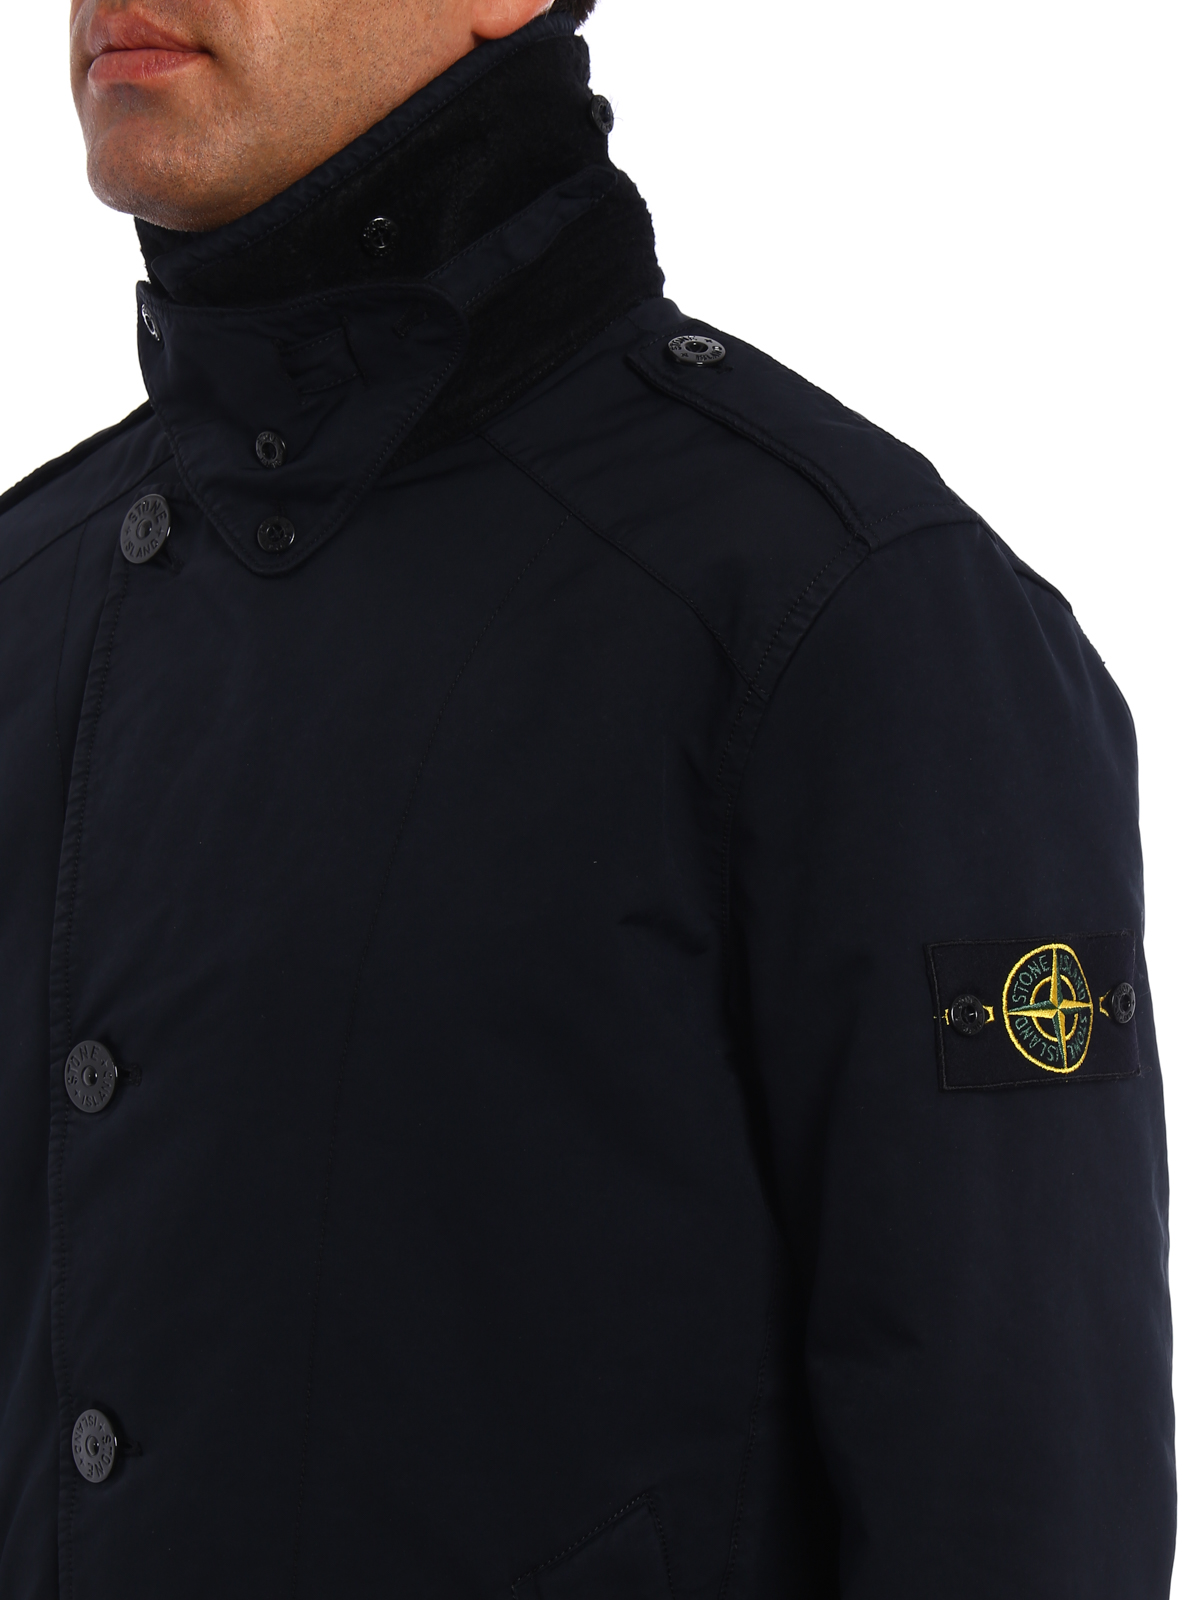 david tc slightly padded trench by stone island trench. Black Bedroom Furniture Sets. Home Design Ideas